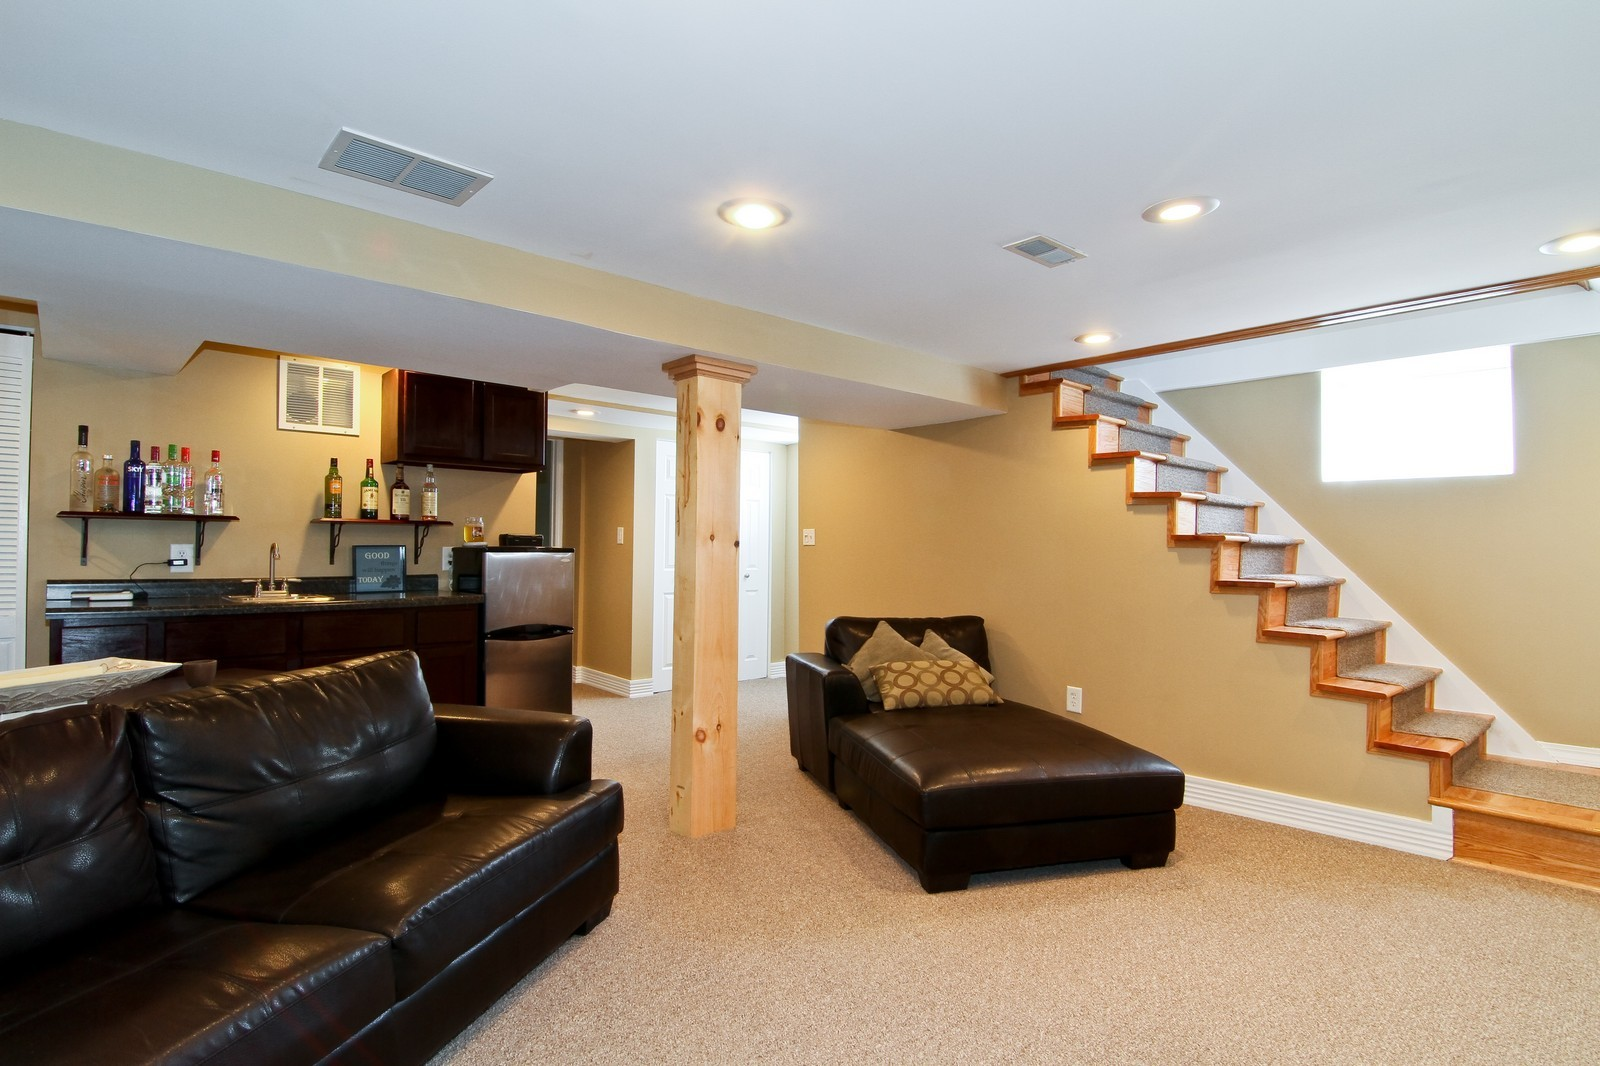 Real Estate Photography - 7760 W 82nd St, Bridgeview, IL, 60455 - Lower Level